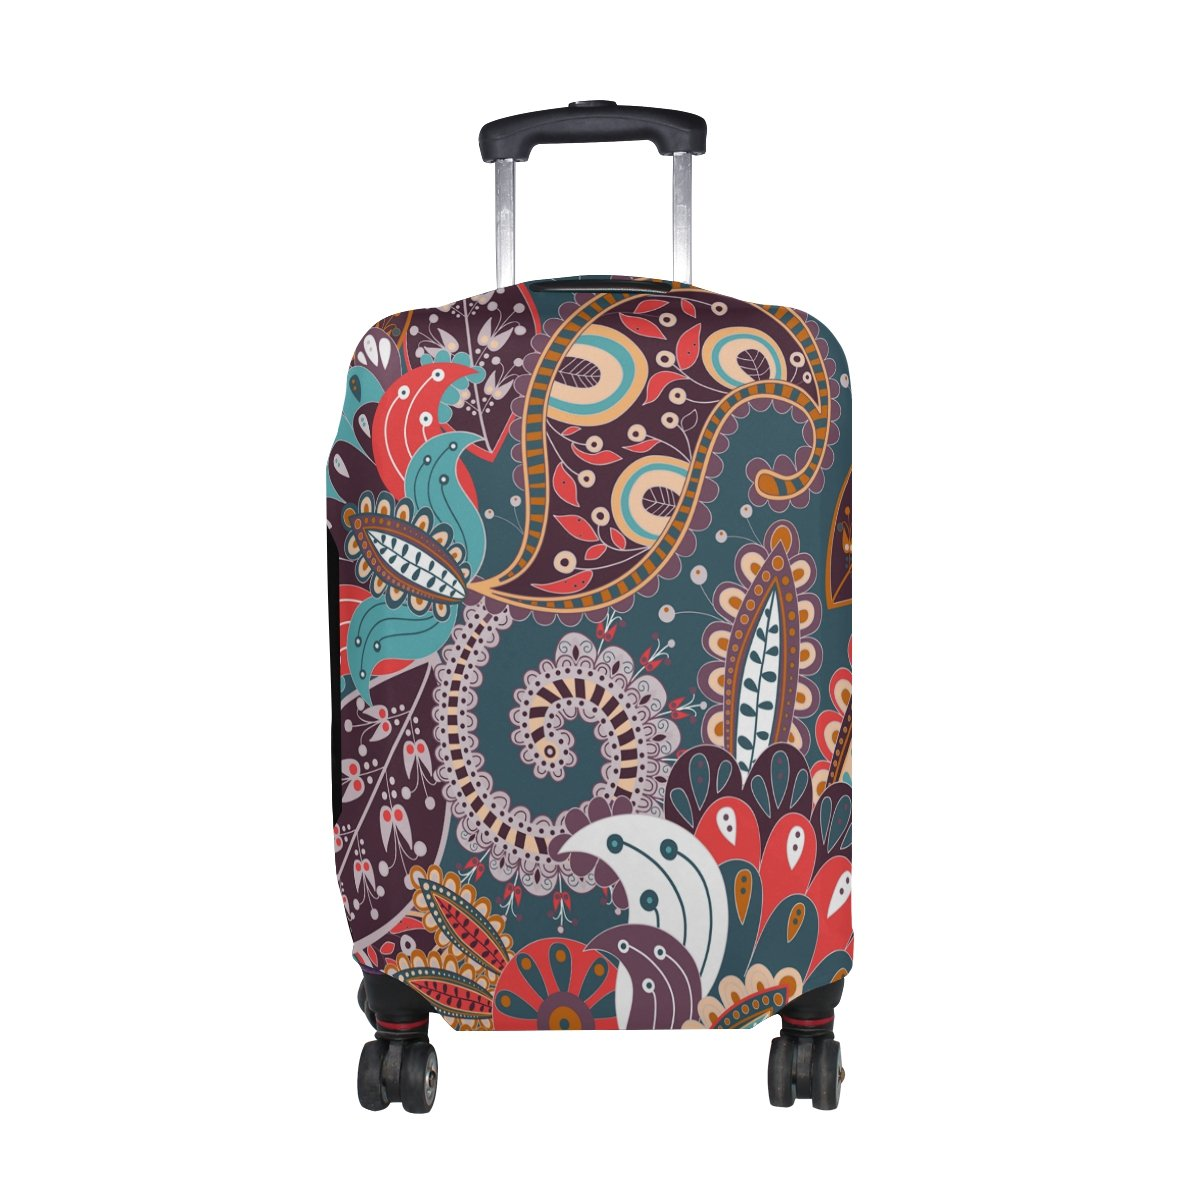 Bohemian Hippie Print Travel Luggage Protector Baggage Suitcase Cover Fits 29-32 Inch Luggage by CoolPrintAll (Image #1)